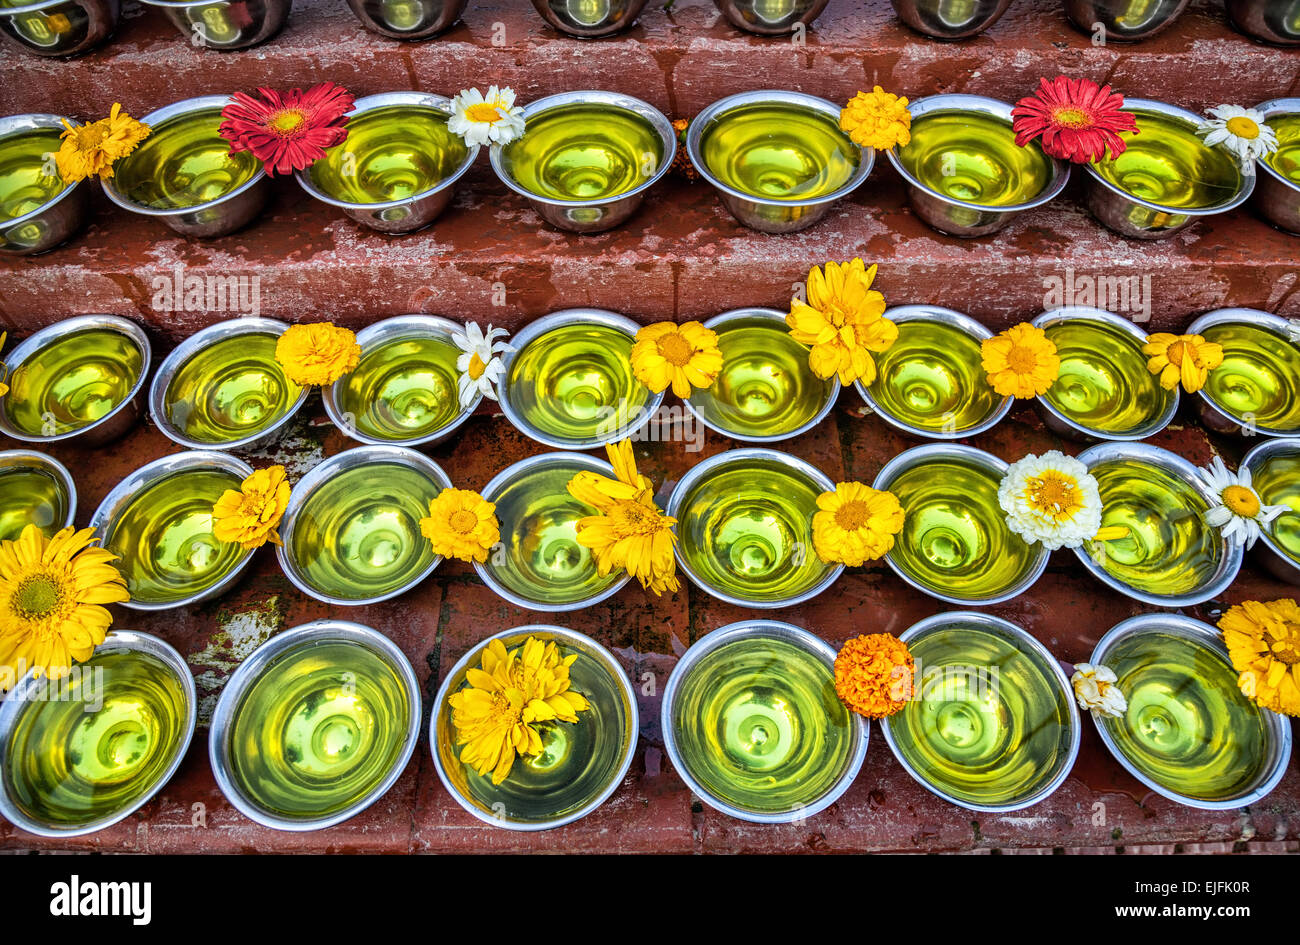 Bowls with saffron water and flowers at Bodhnath stupa in Kathmandu valley, Nepal - Stock Image